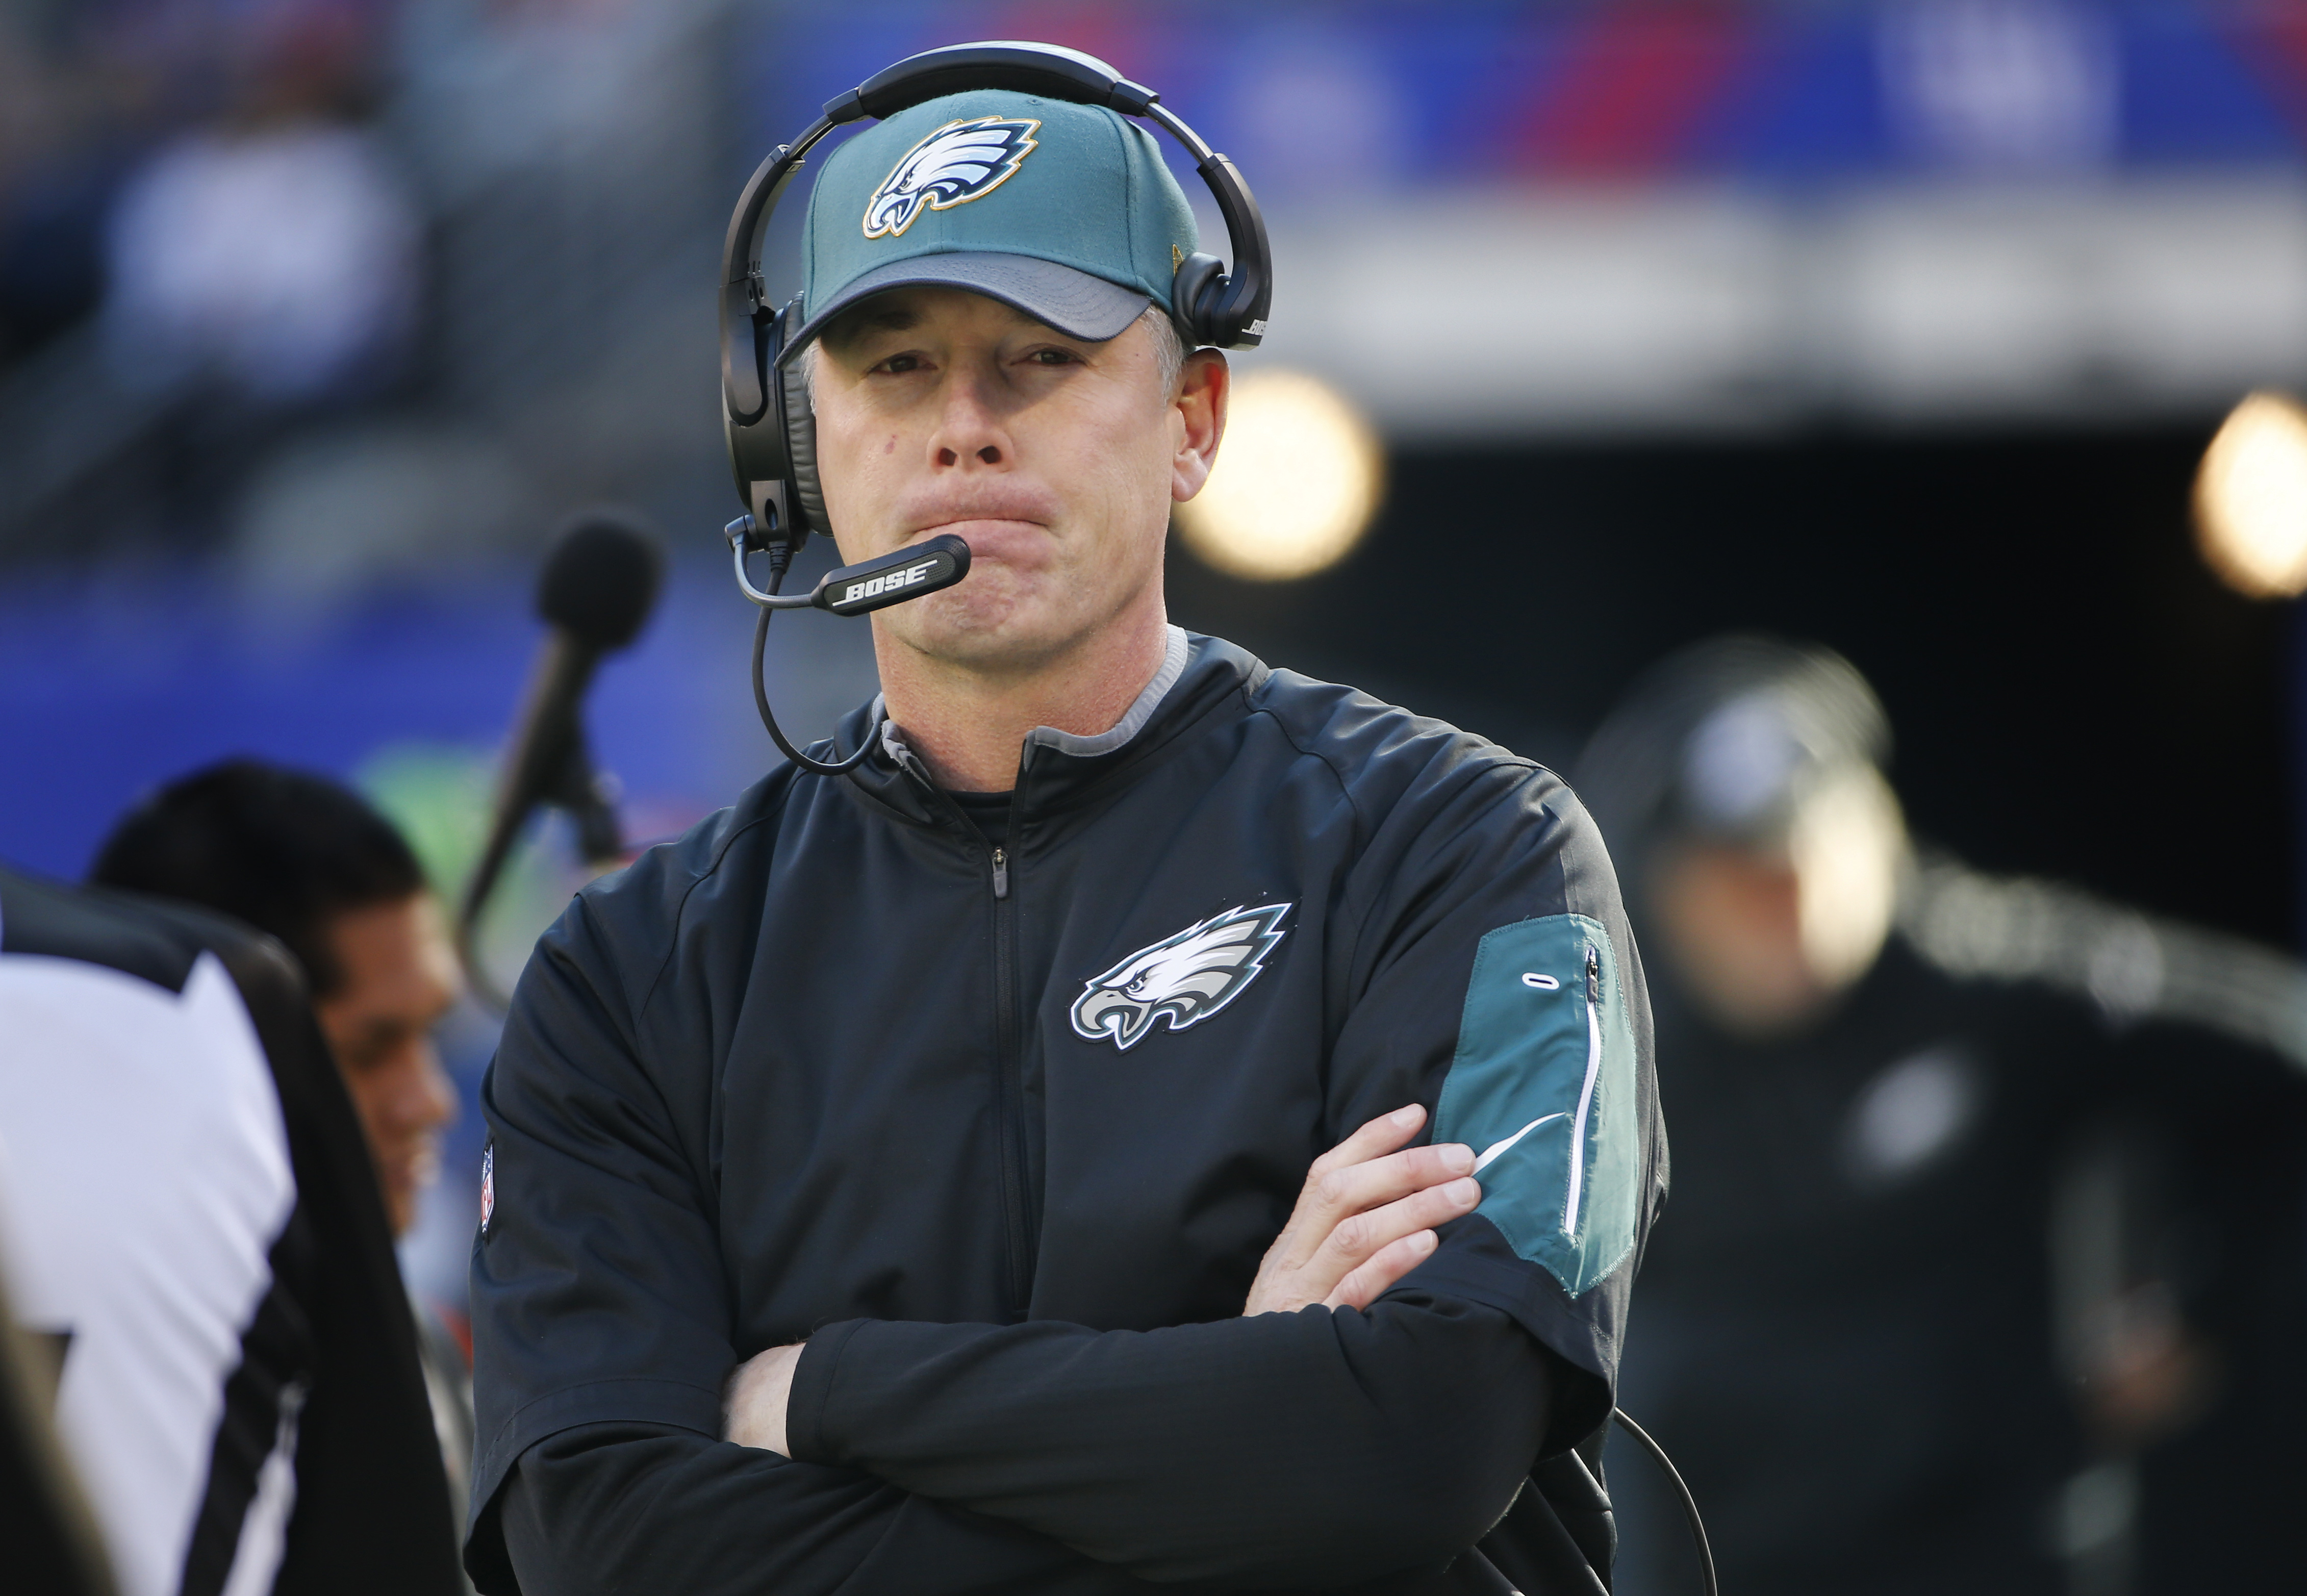 FILE - In this Jan. 3, 2016, file photo, Philadelphia Eagles interim head coach Pat Shurmur watches play from the sidelines during an NFL football game against the New York Giants, in East Rutherford, N.J. According to a person with direct knowledge of th